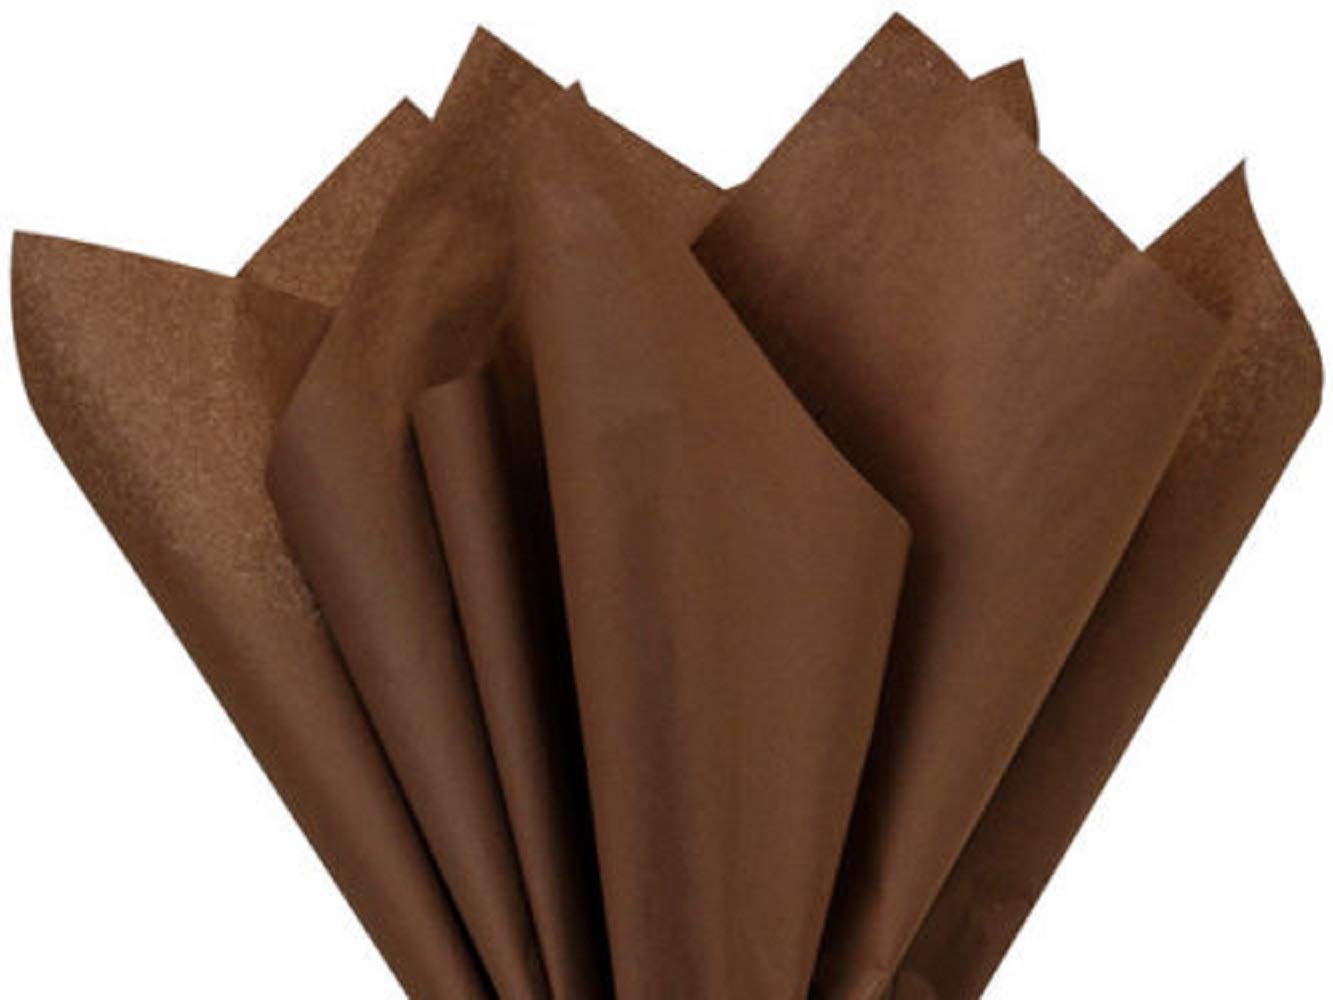 480 Sheets Chocolate Brown 20x30 Tissue Paper Holiday Party Weddings Craft Poms Party Supplies tokocathy by tokocathy (Image #1)